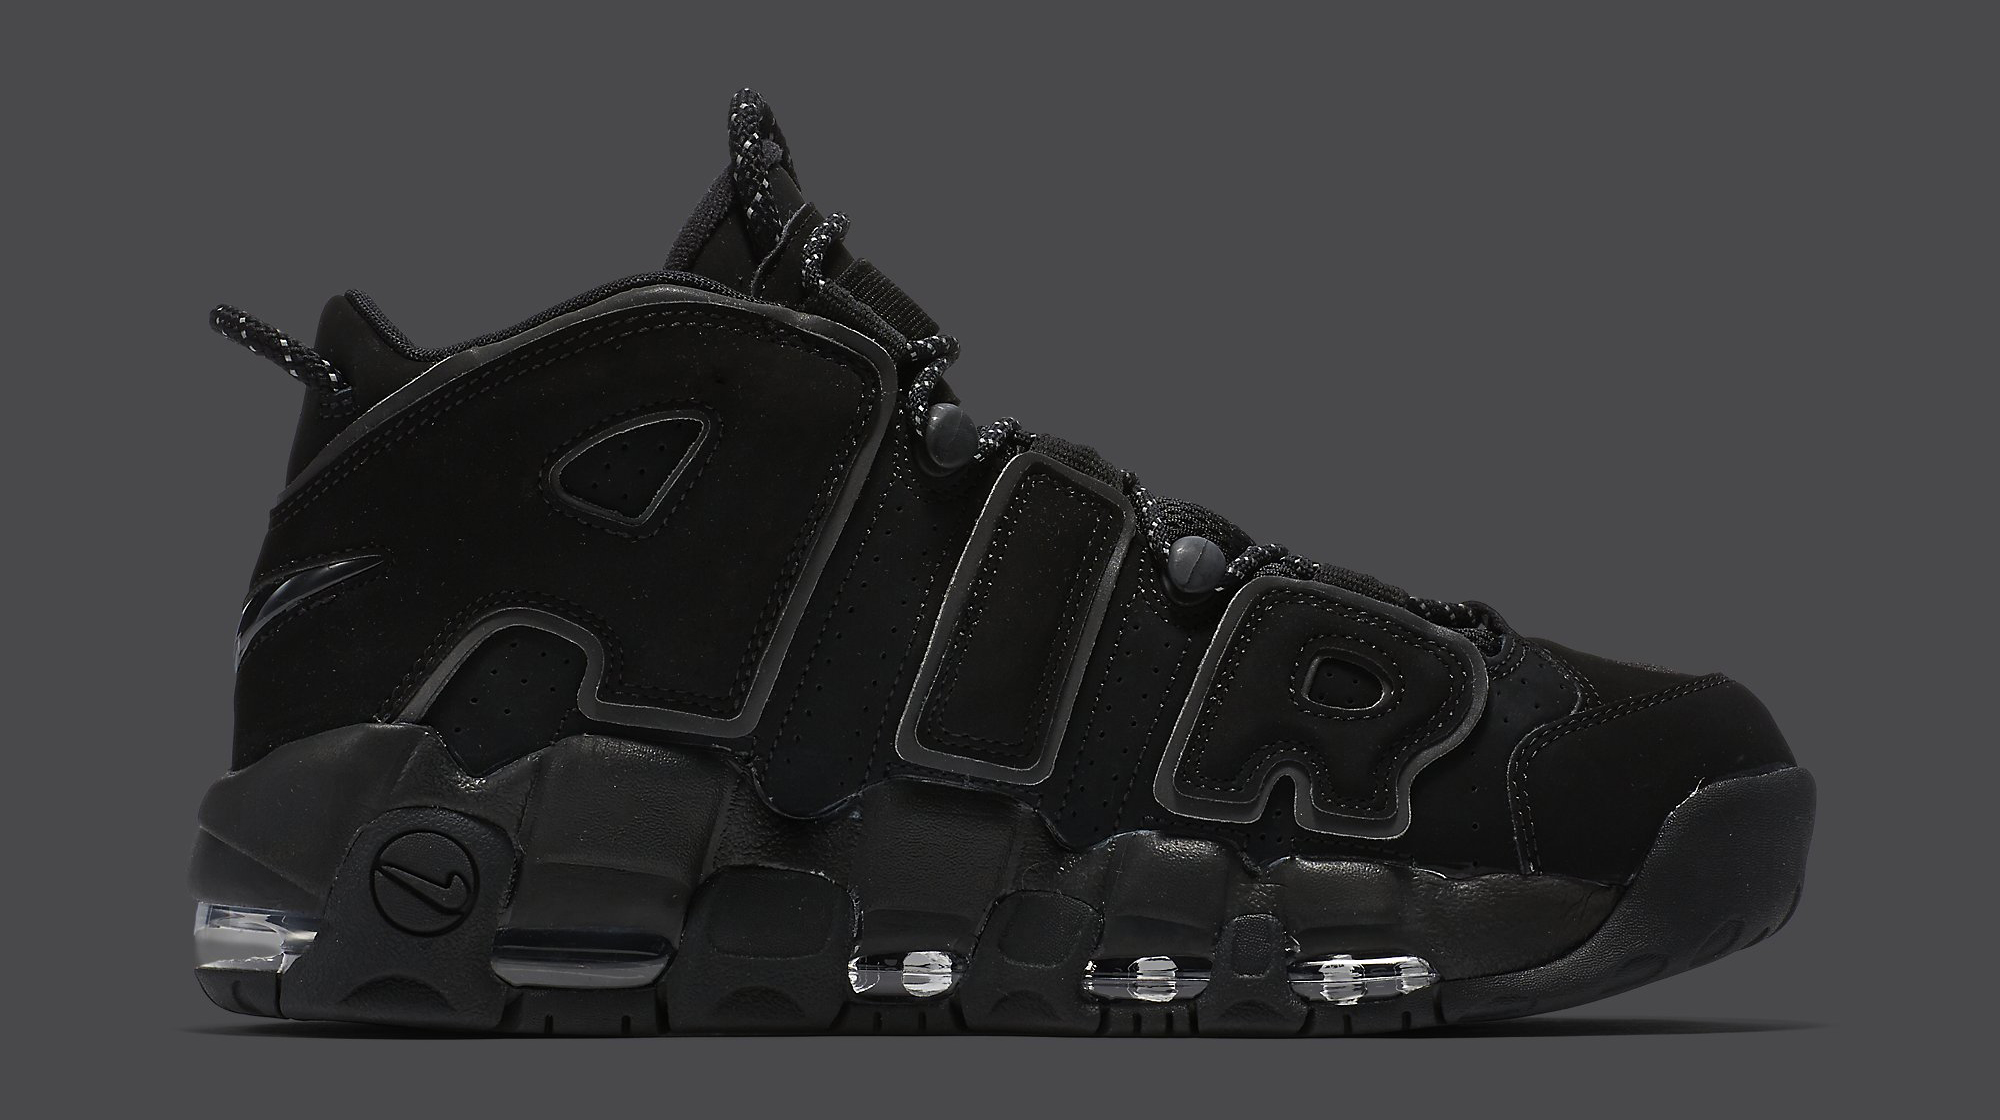 big sale 92d40 b4784 Image via Nike Nike Air More Uptempo Black Reflective 414962-004 Medial